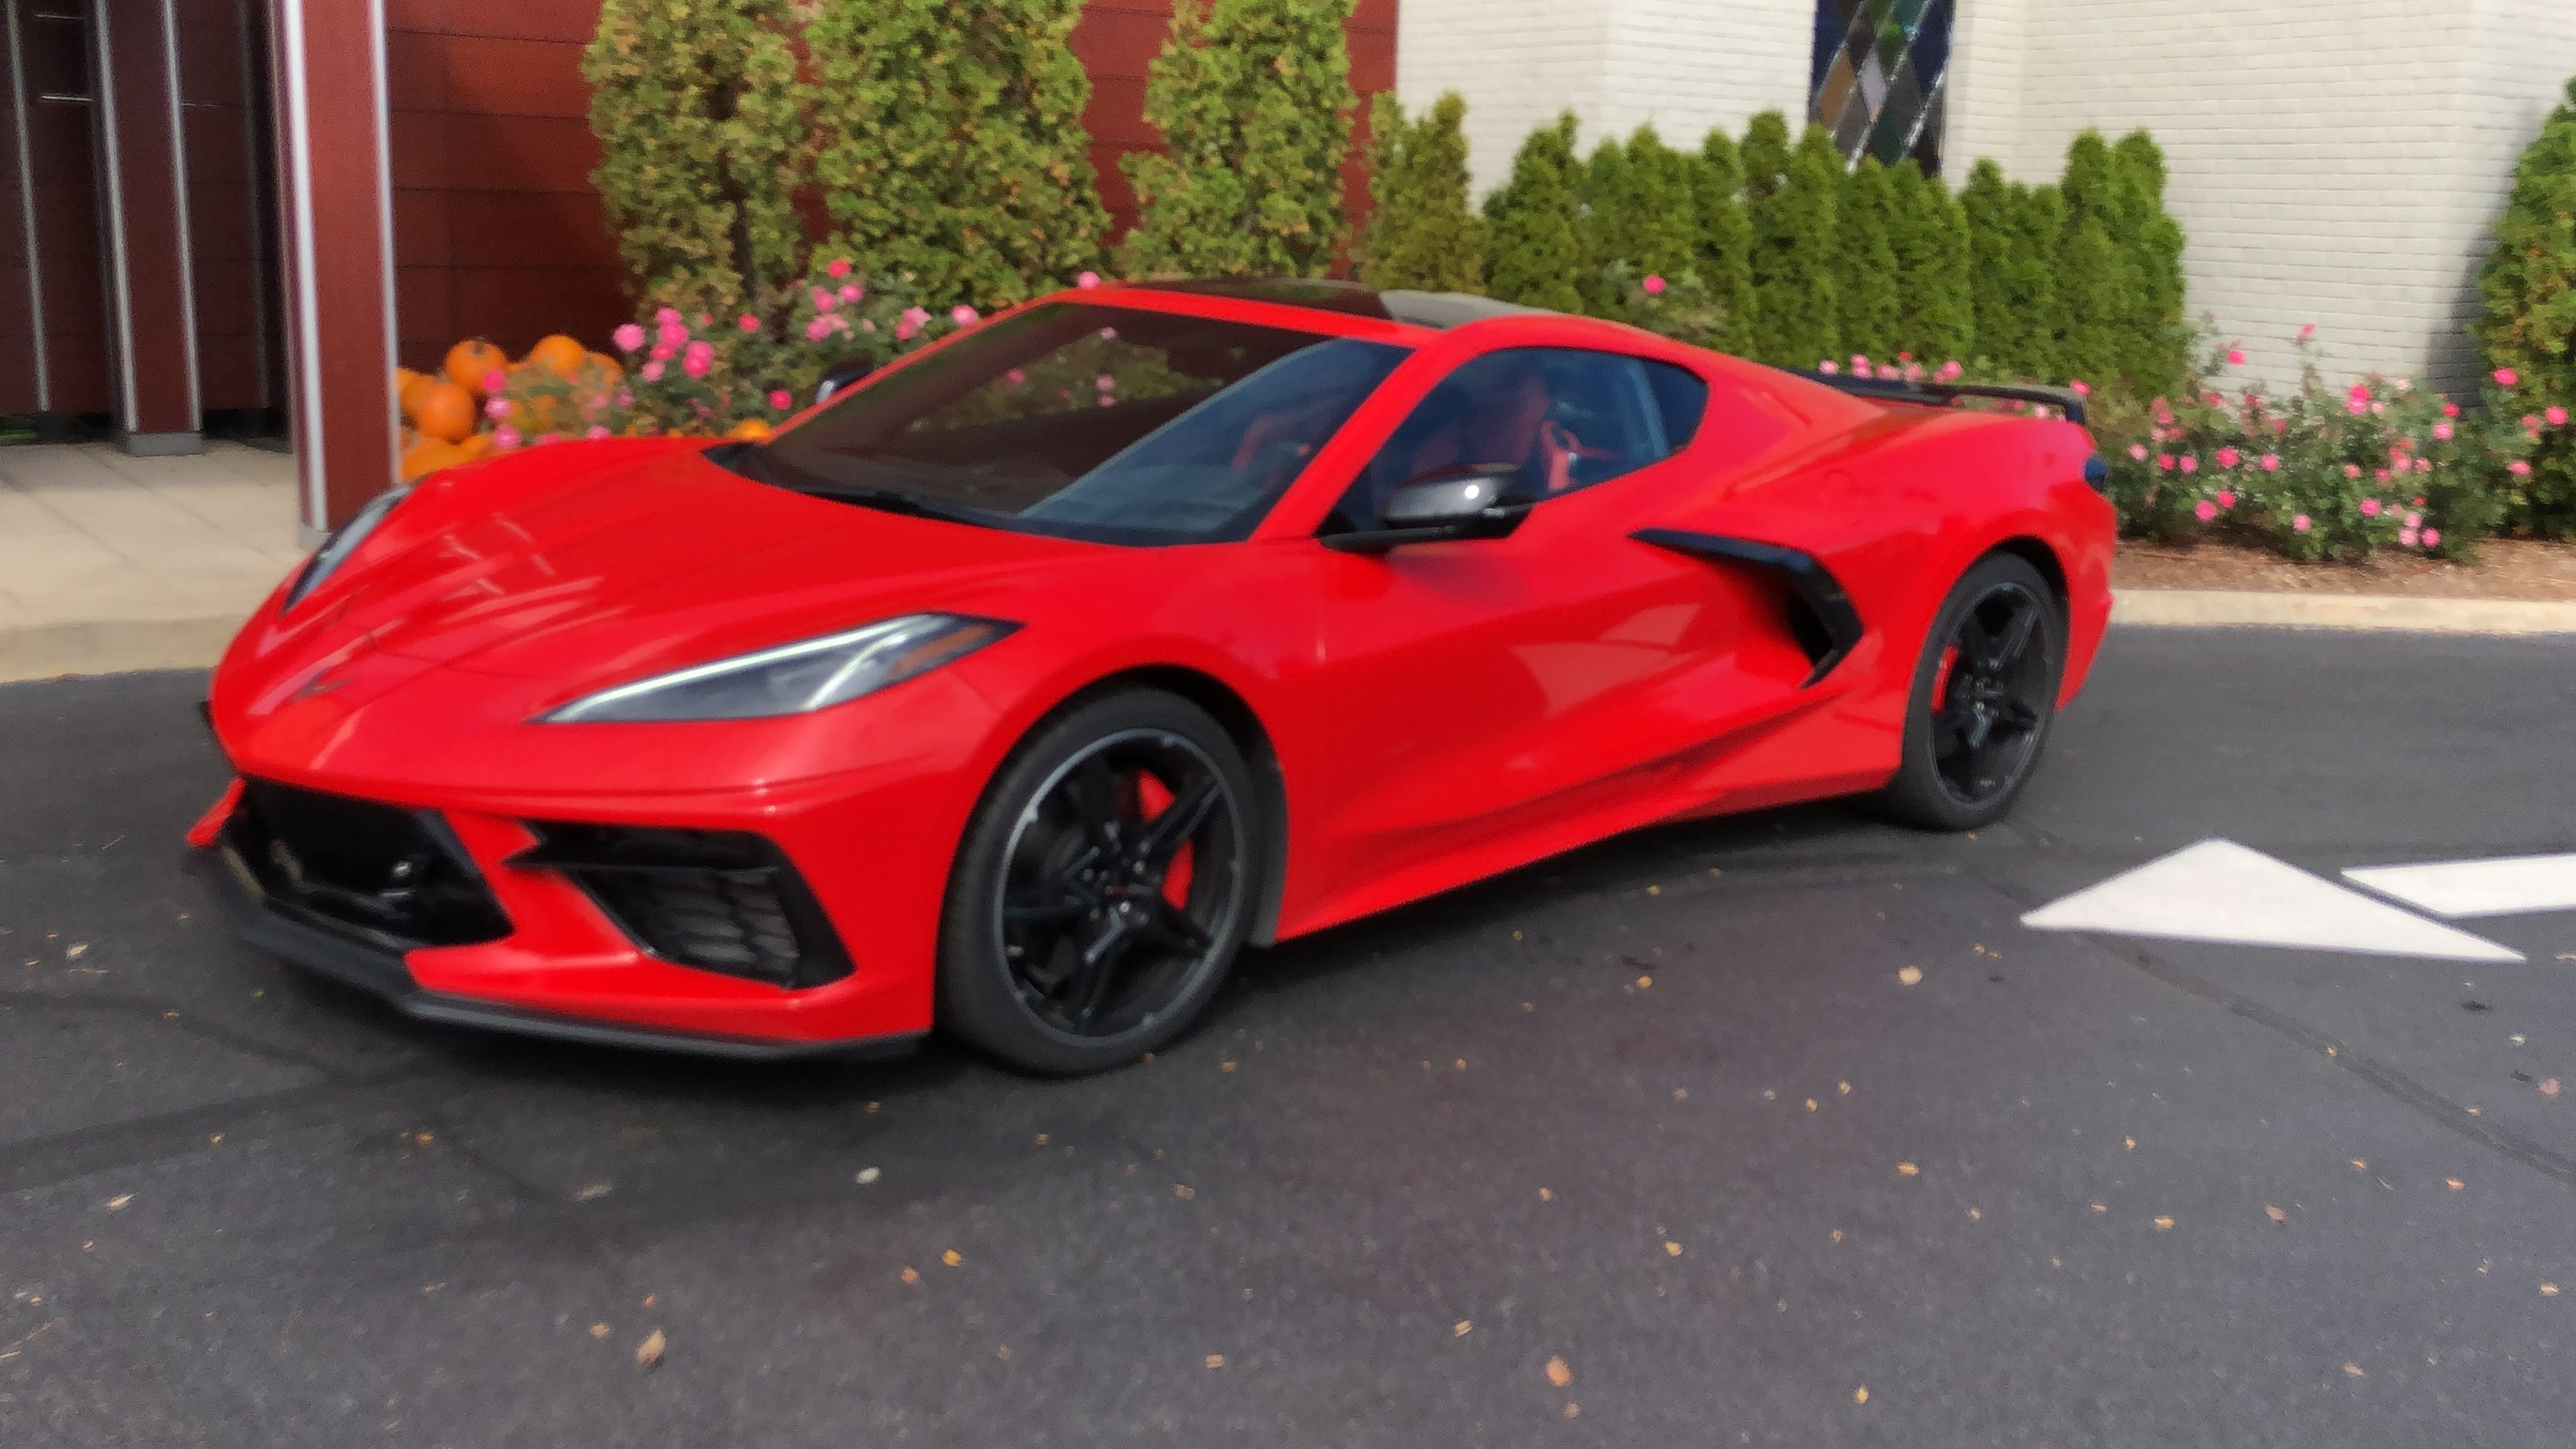 2020 Corvette isn't just super-fast; it's luxury-car quiet and smooth